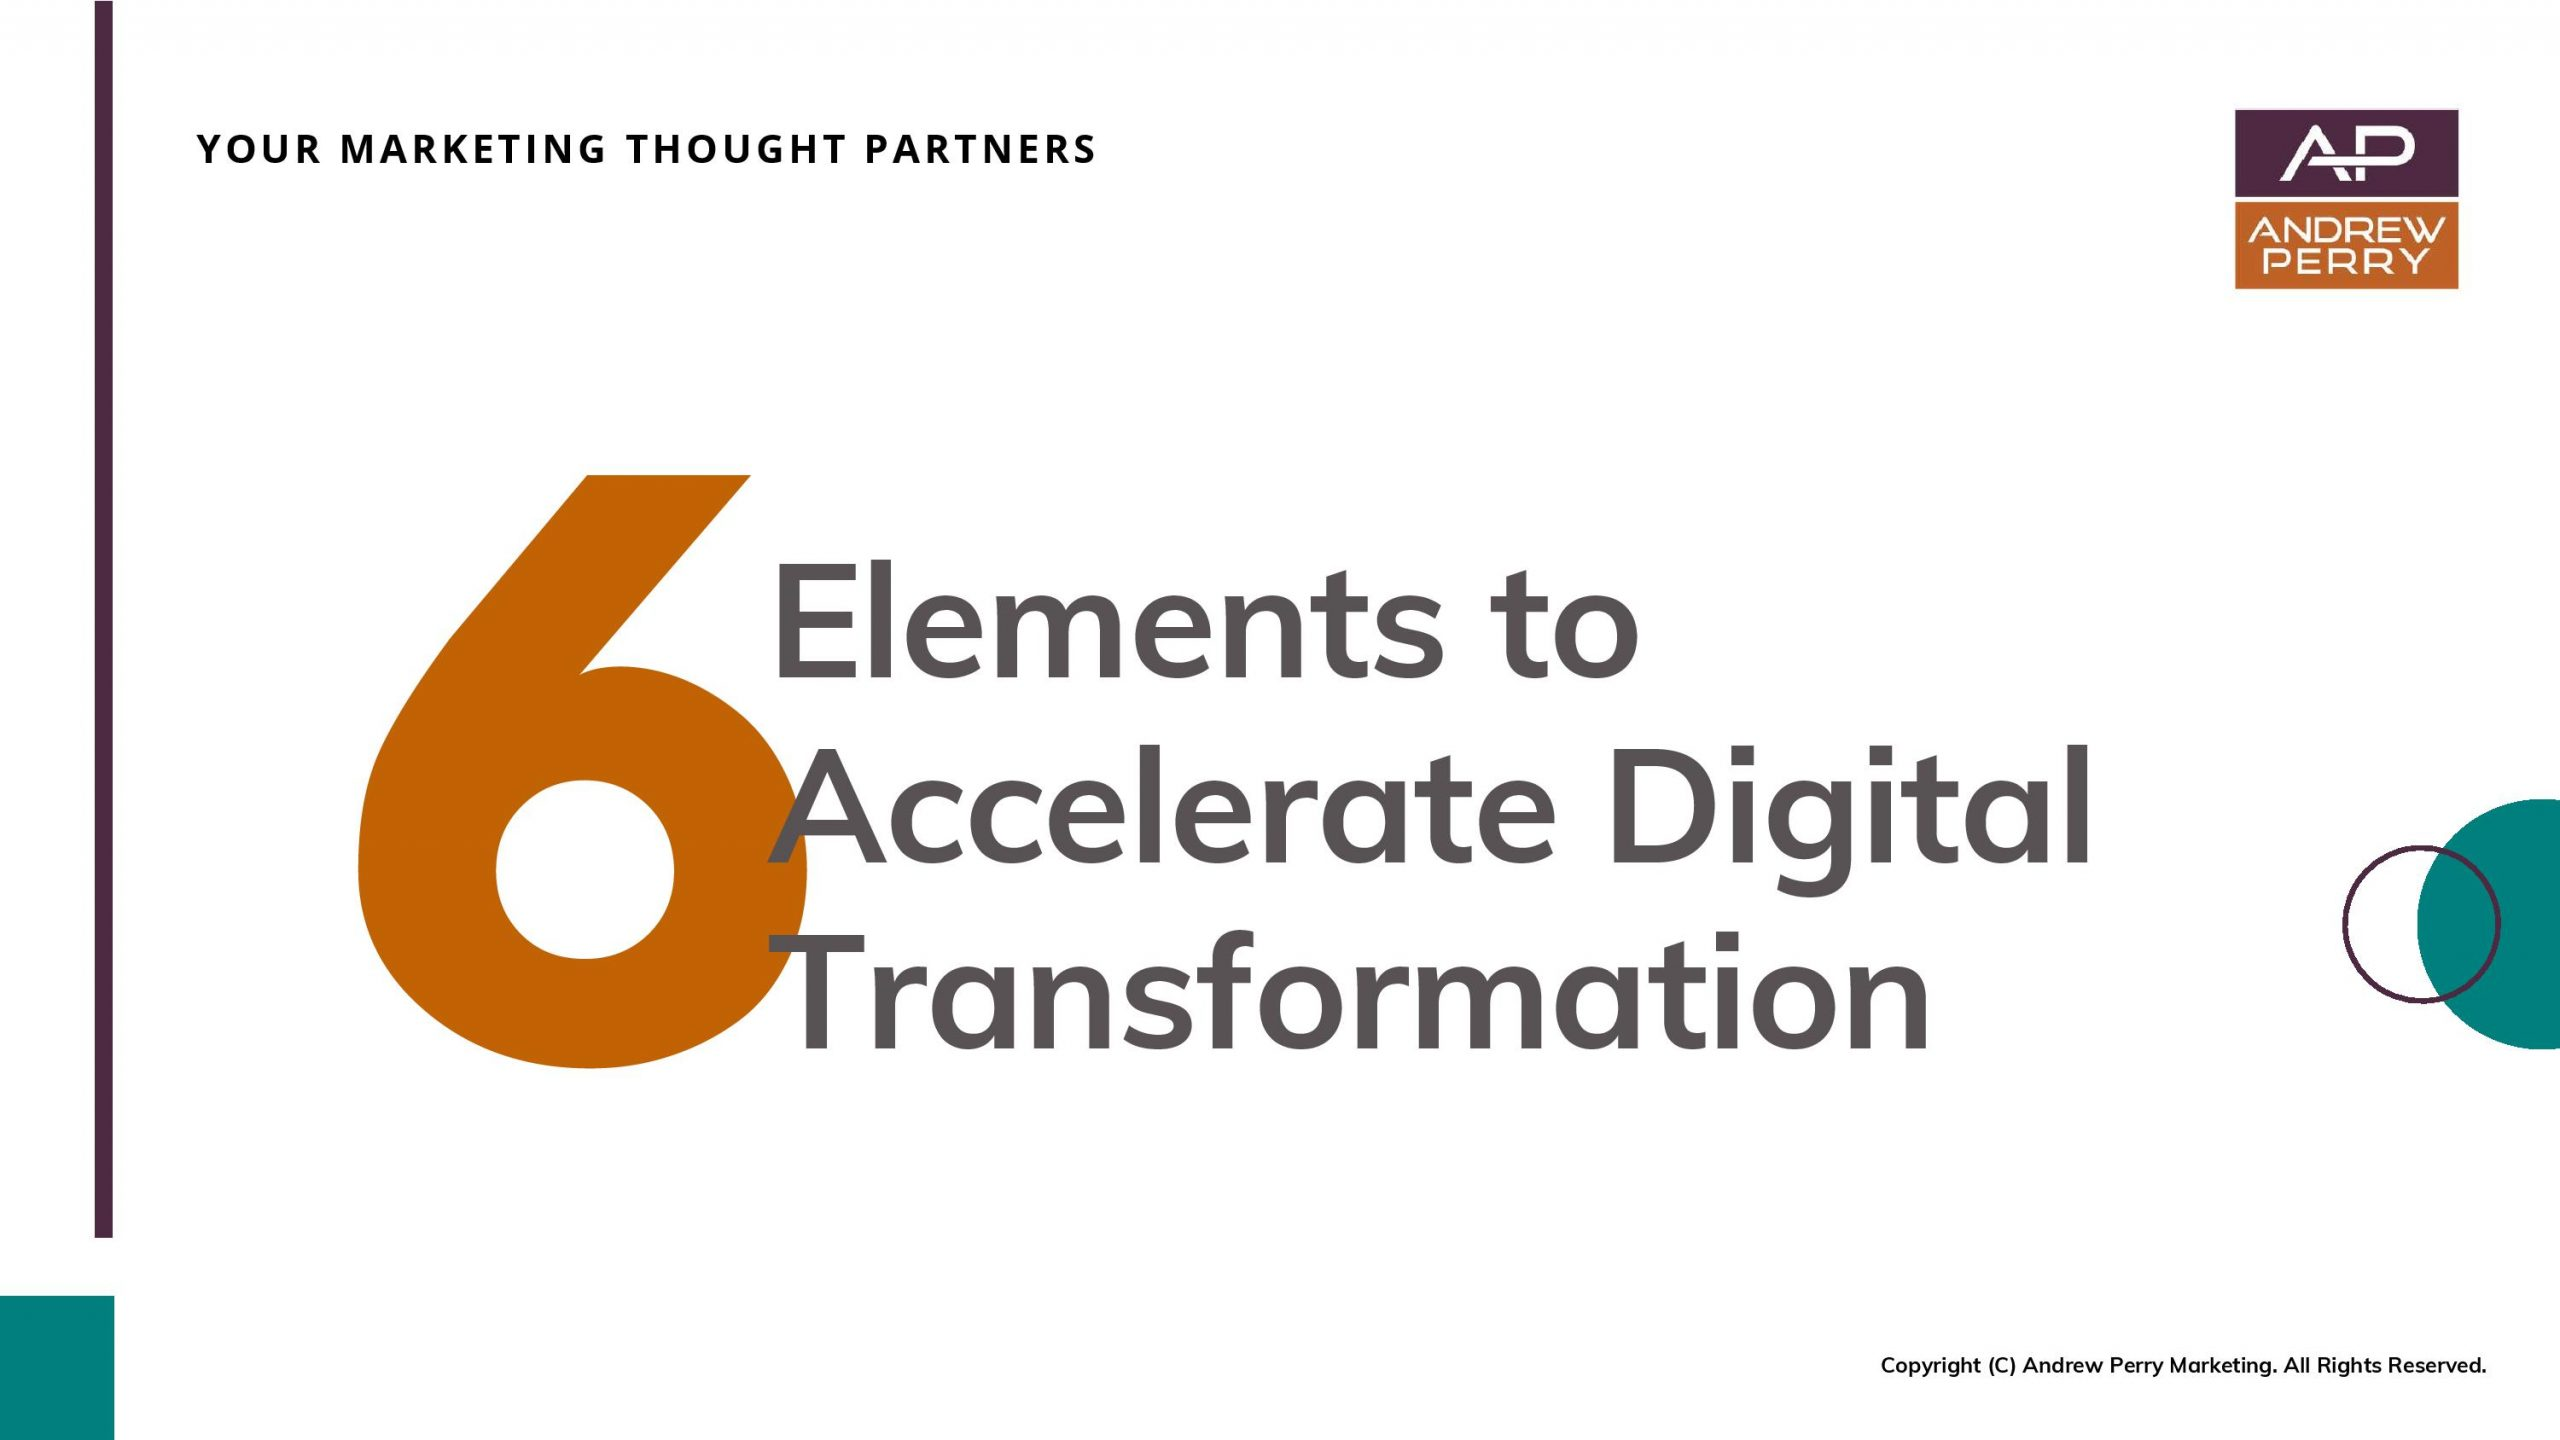 6 Elements to Accelerate Digital Transformation